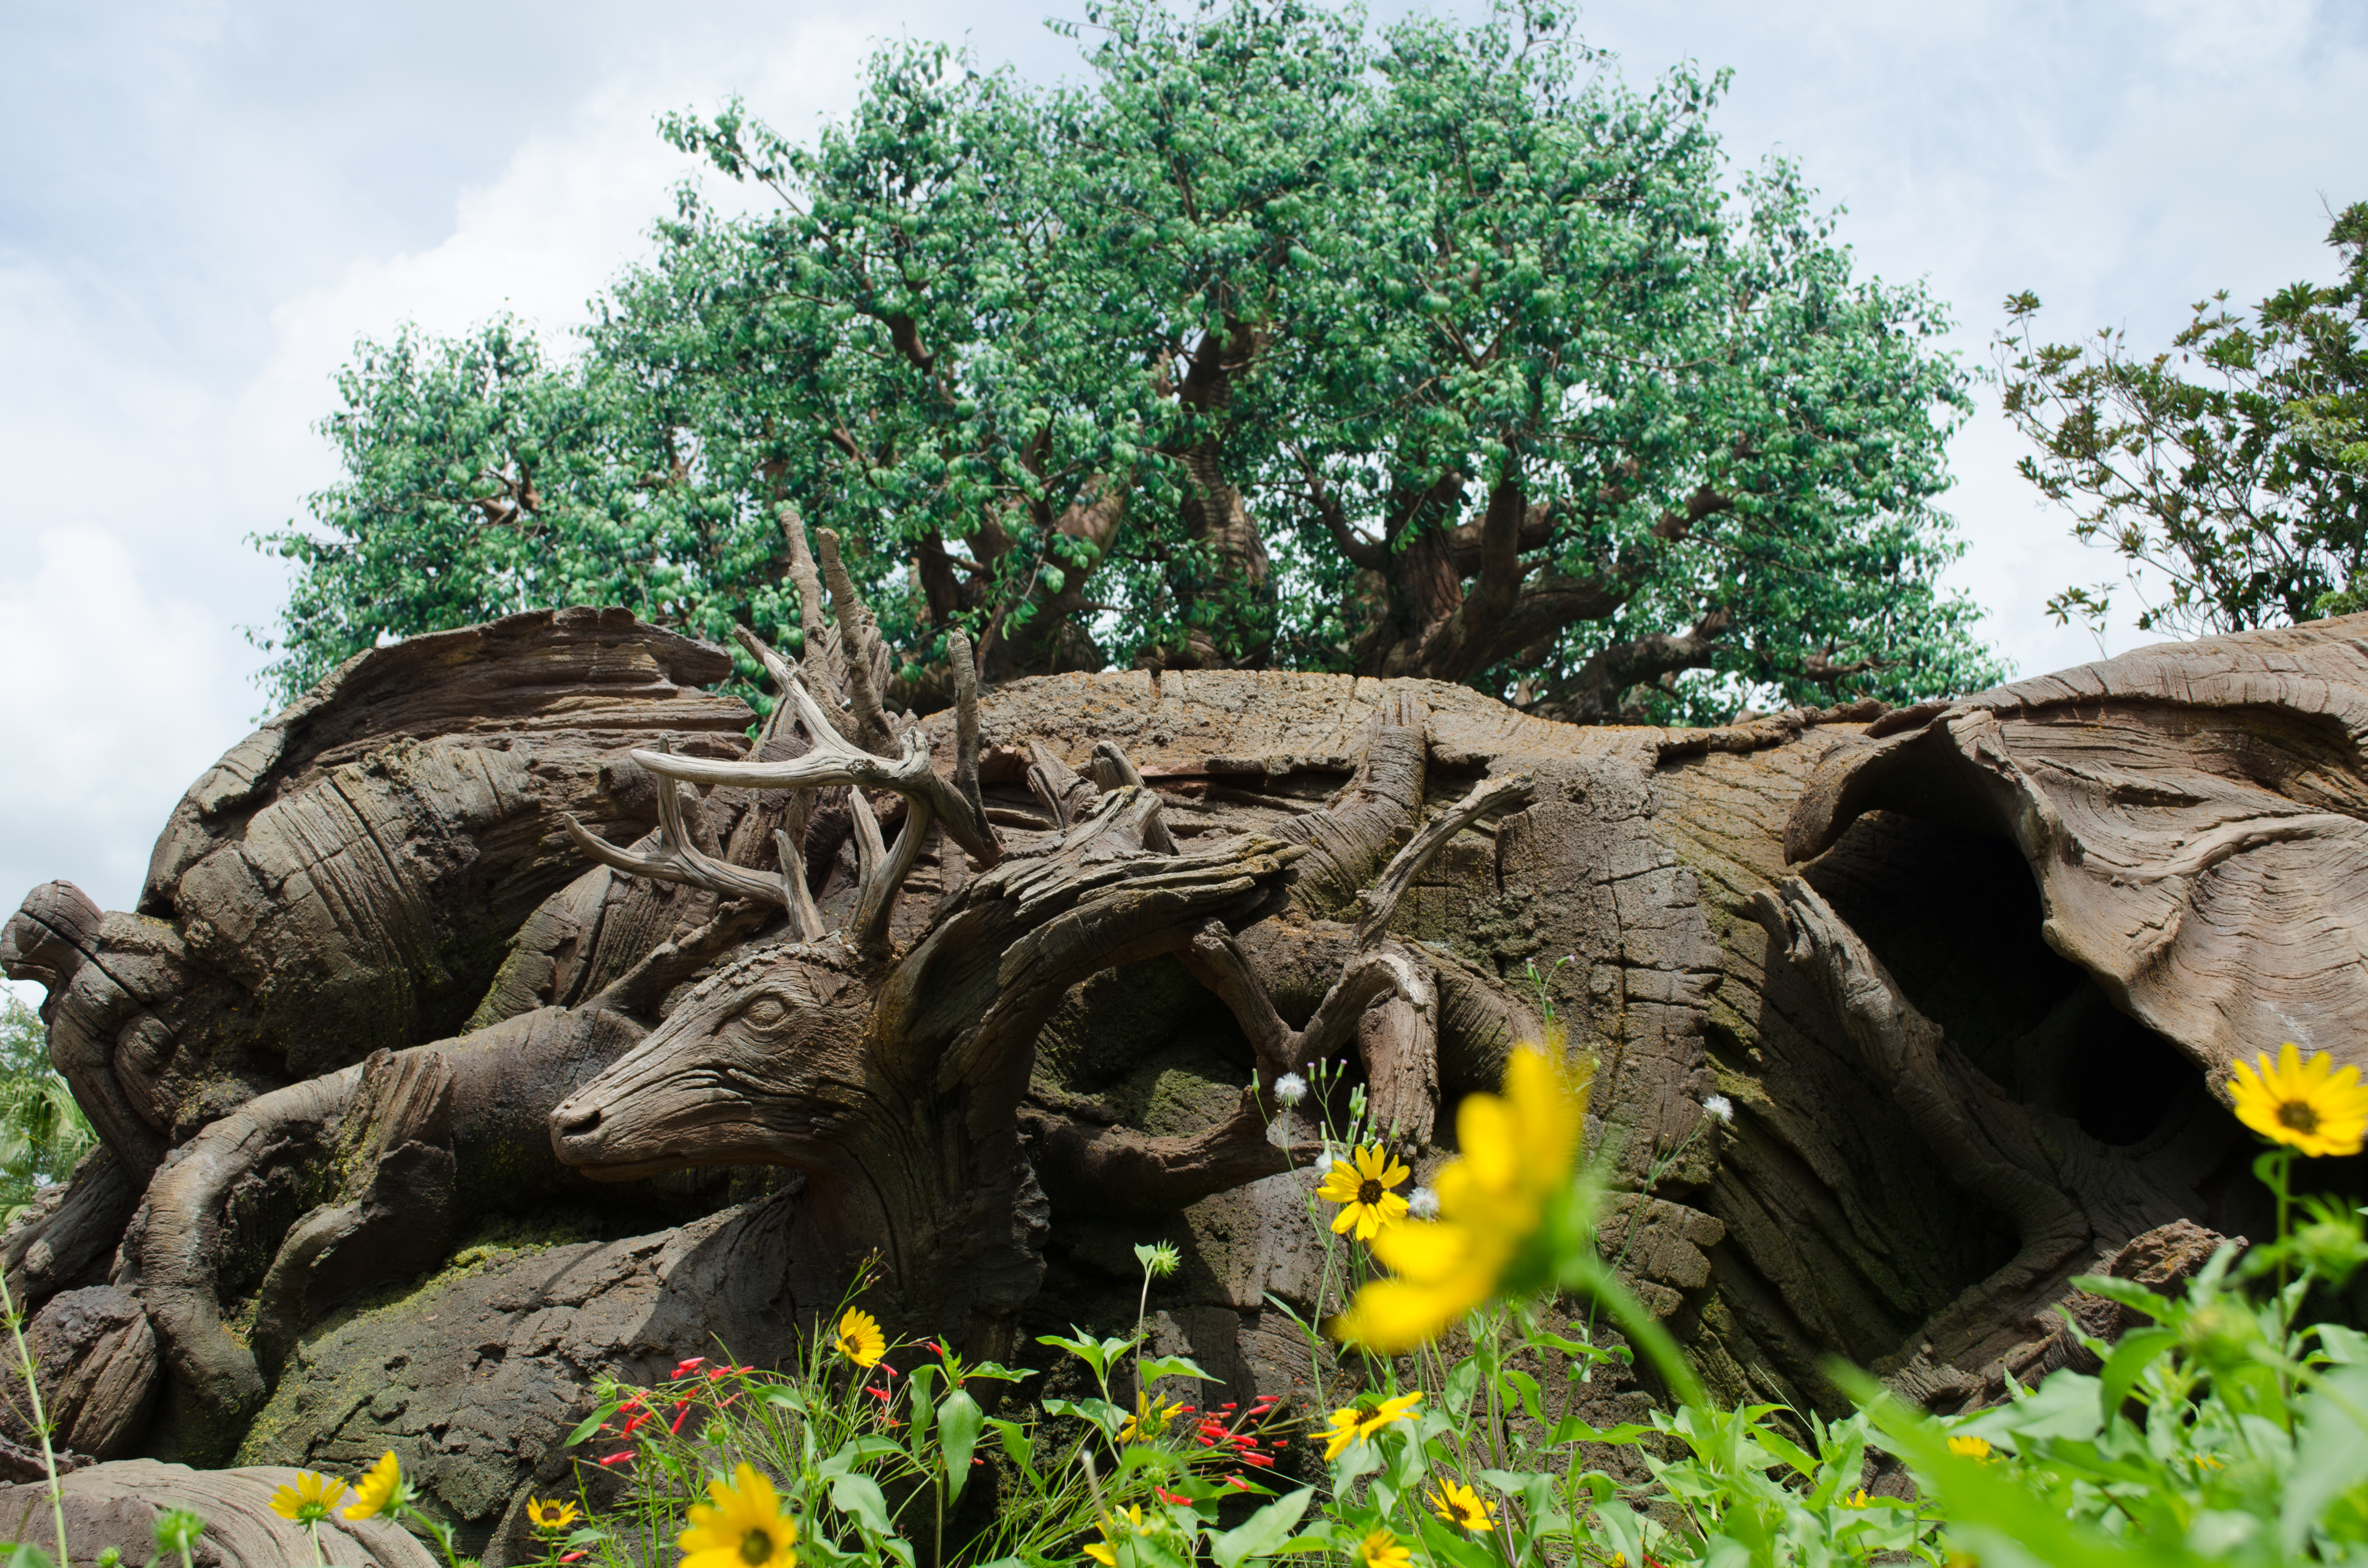 AnimalKingdom_08292015-6